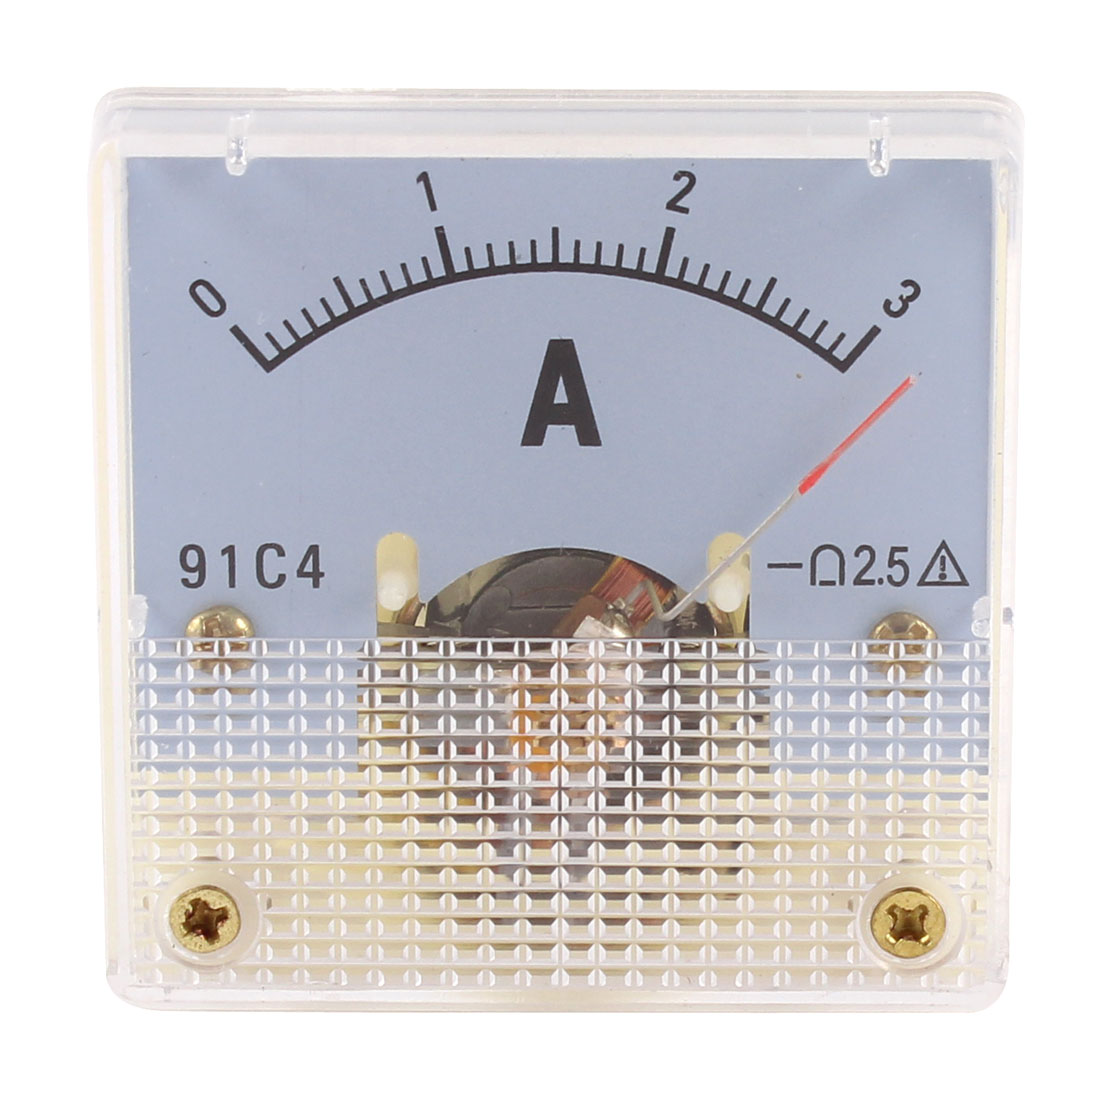 91C4 DC 0-3A Rectangle Mini Analog Panel Ammeter Gauge Amperemeter Class 2.5